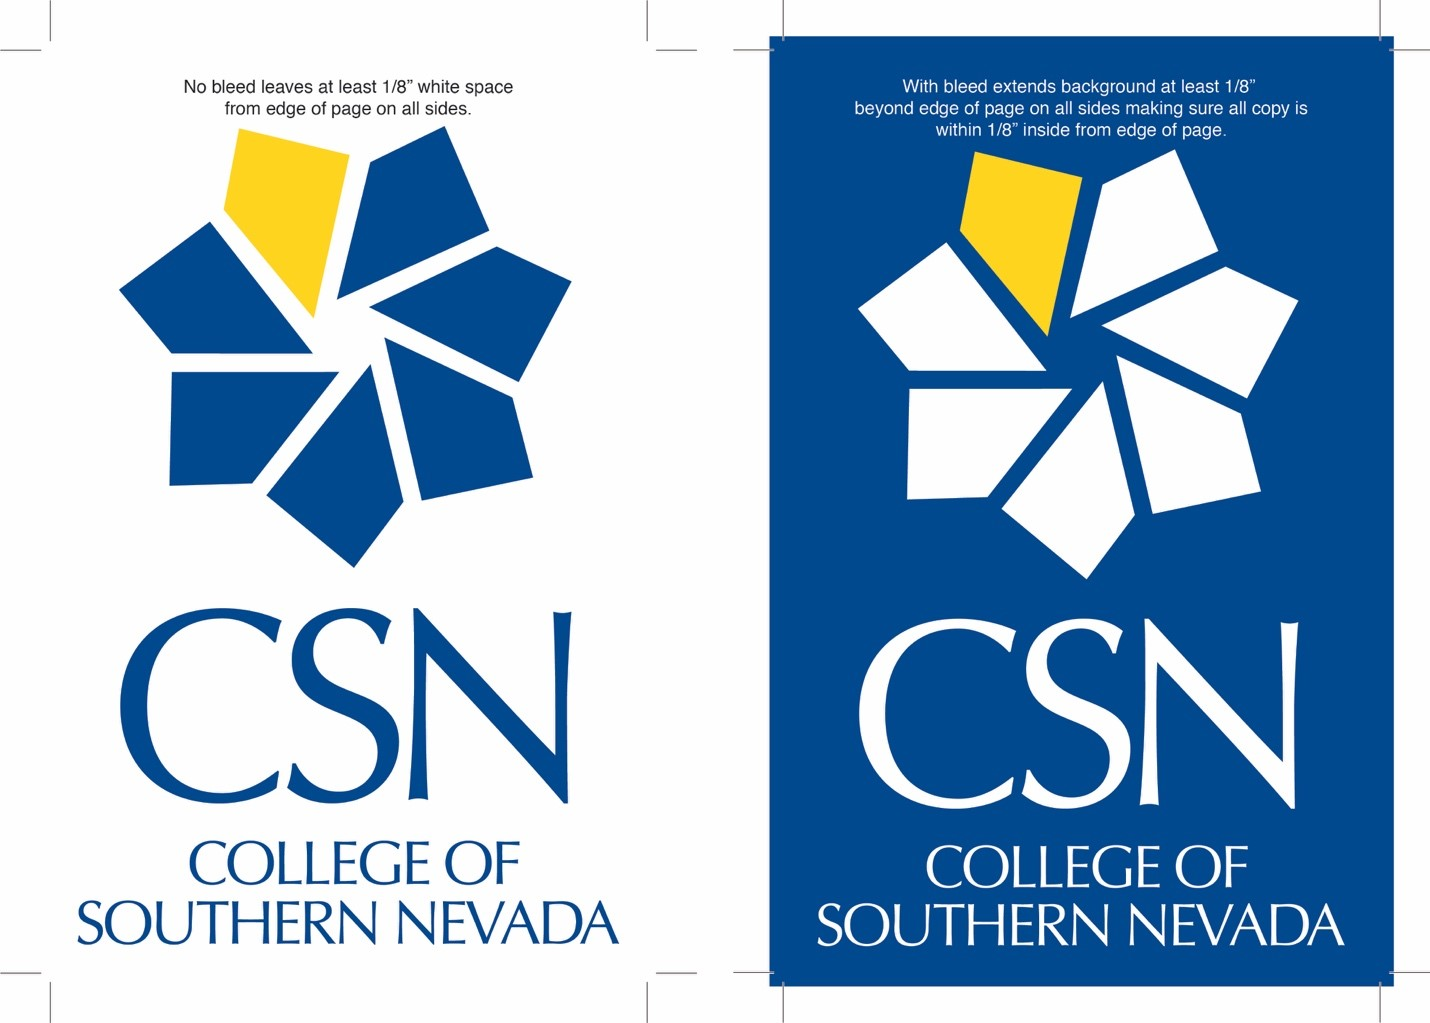 CSN Logo size and bleed printing example